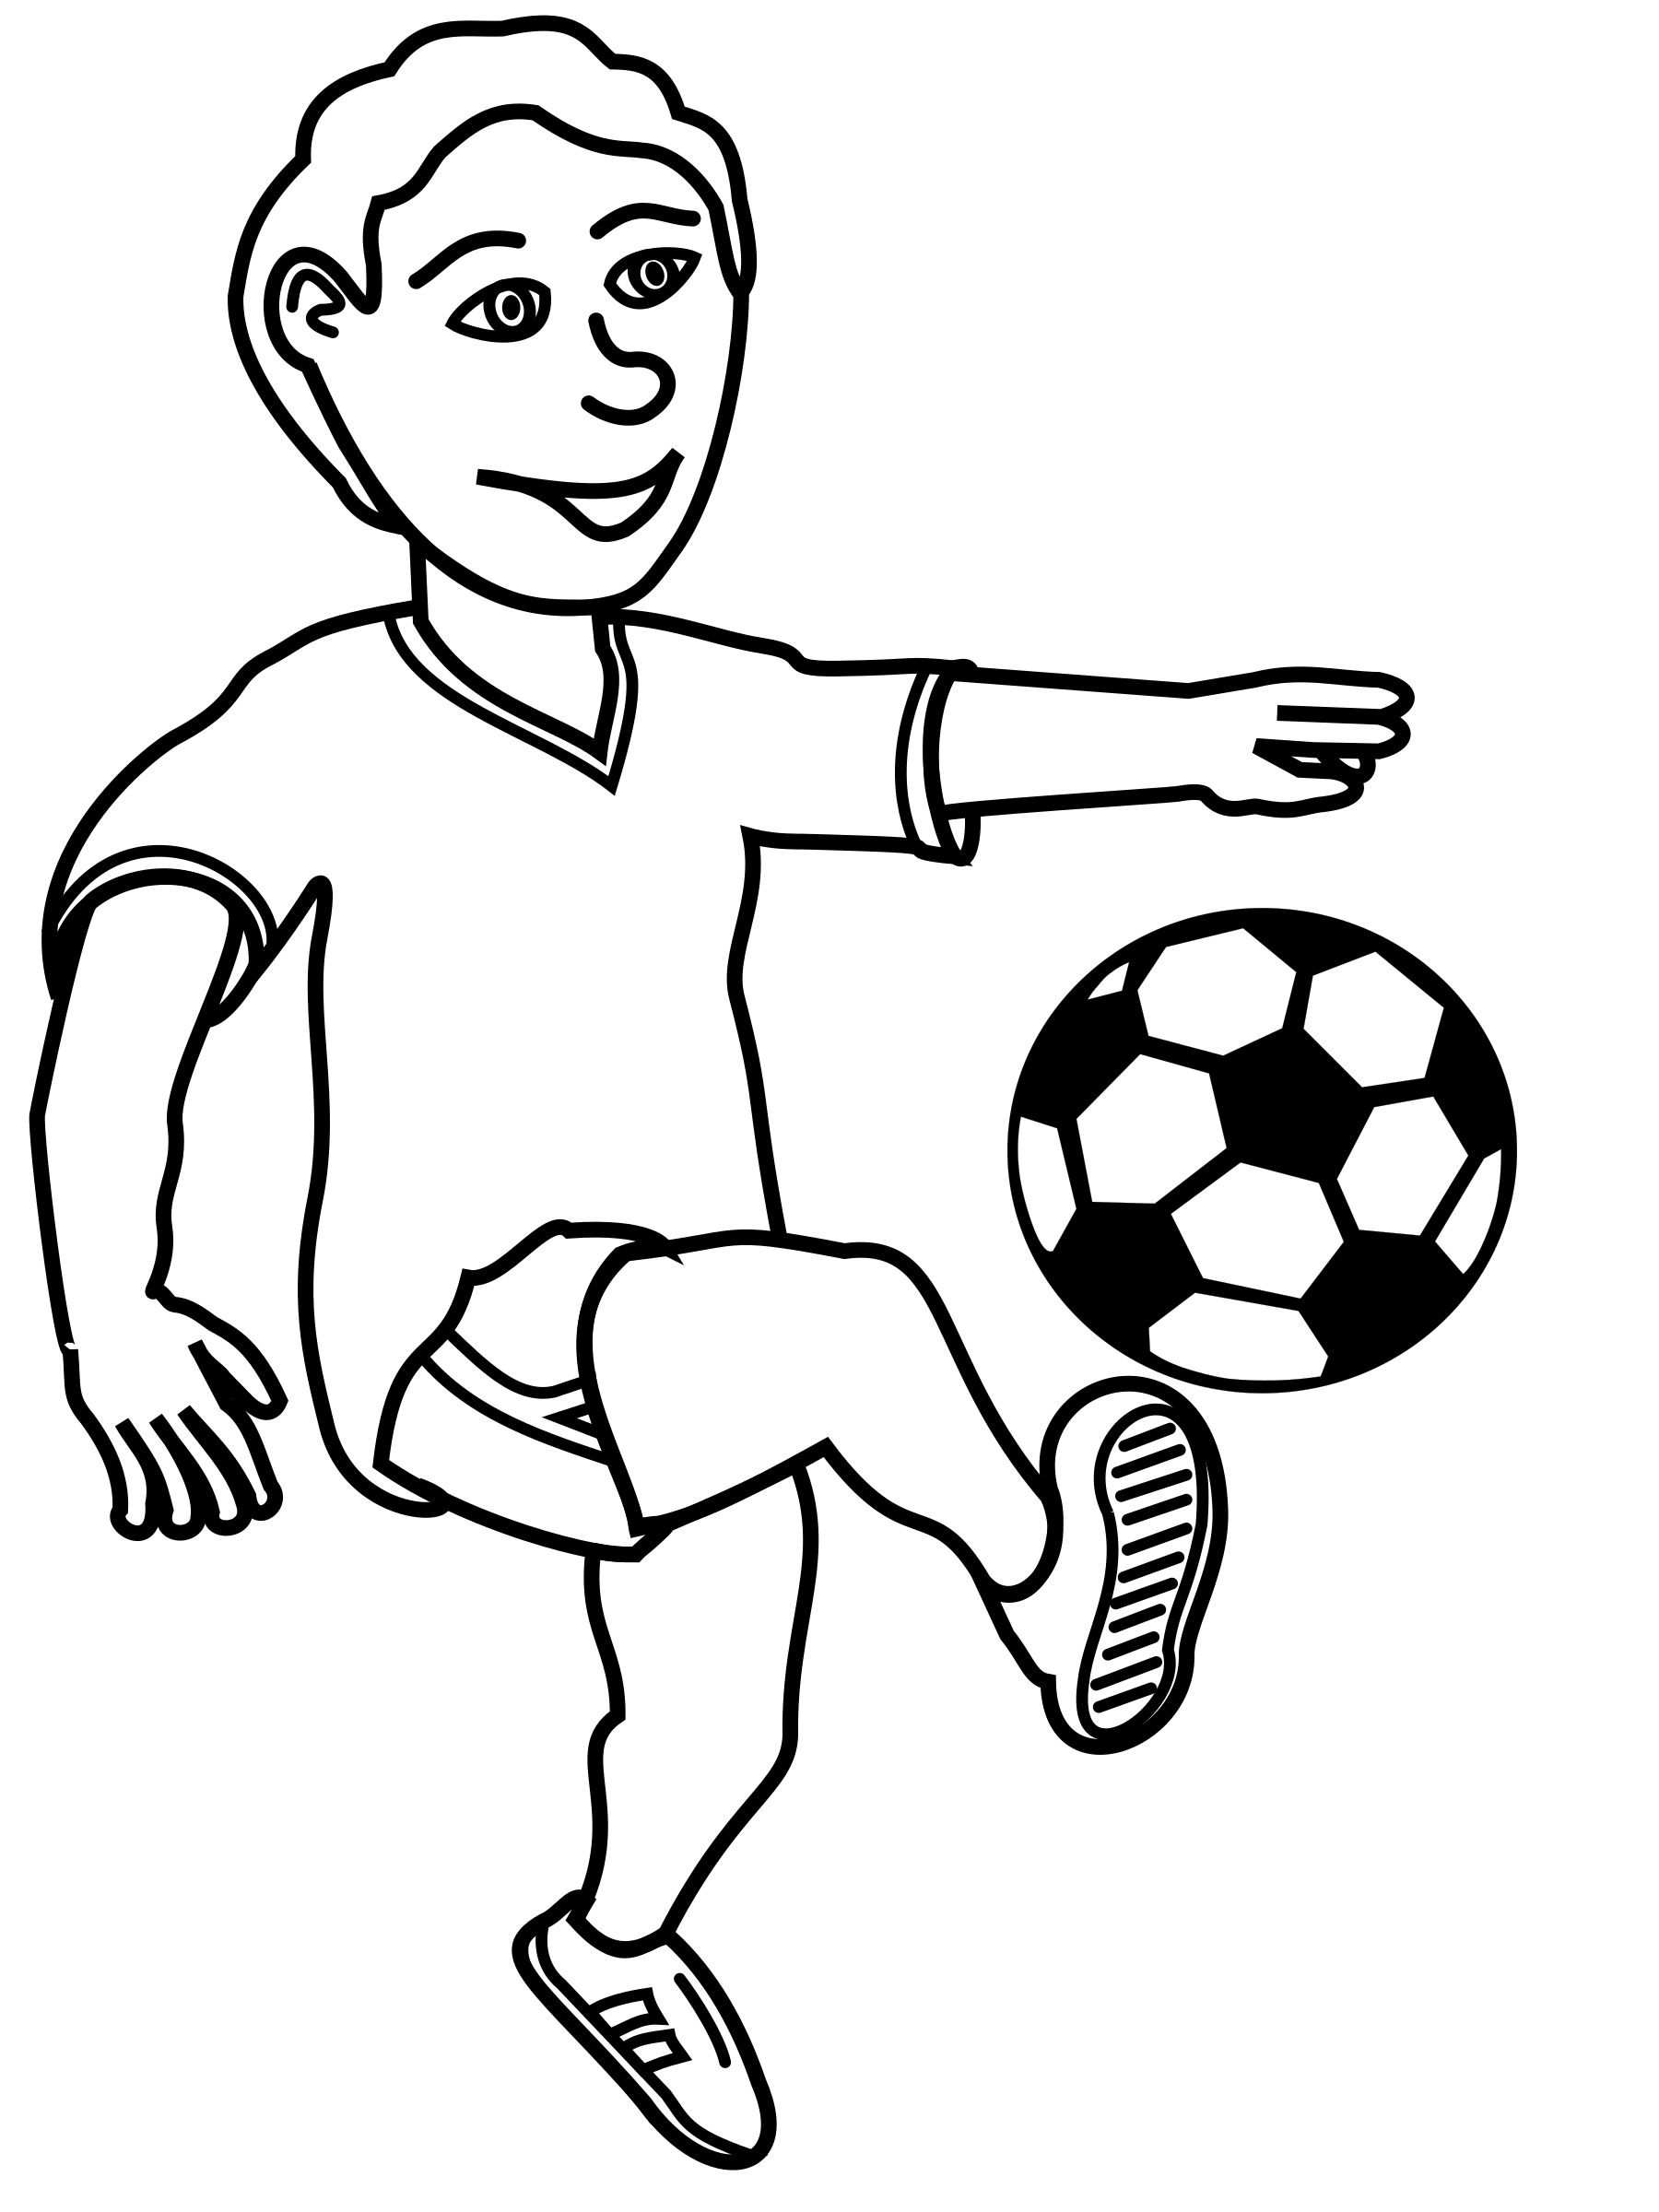 Soccer Balls Black And White | Free download best Soccer ...